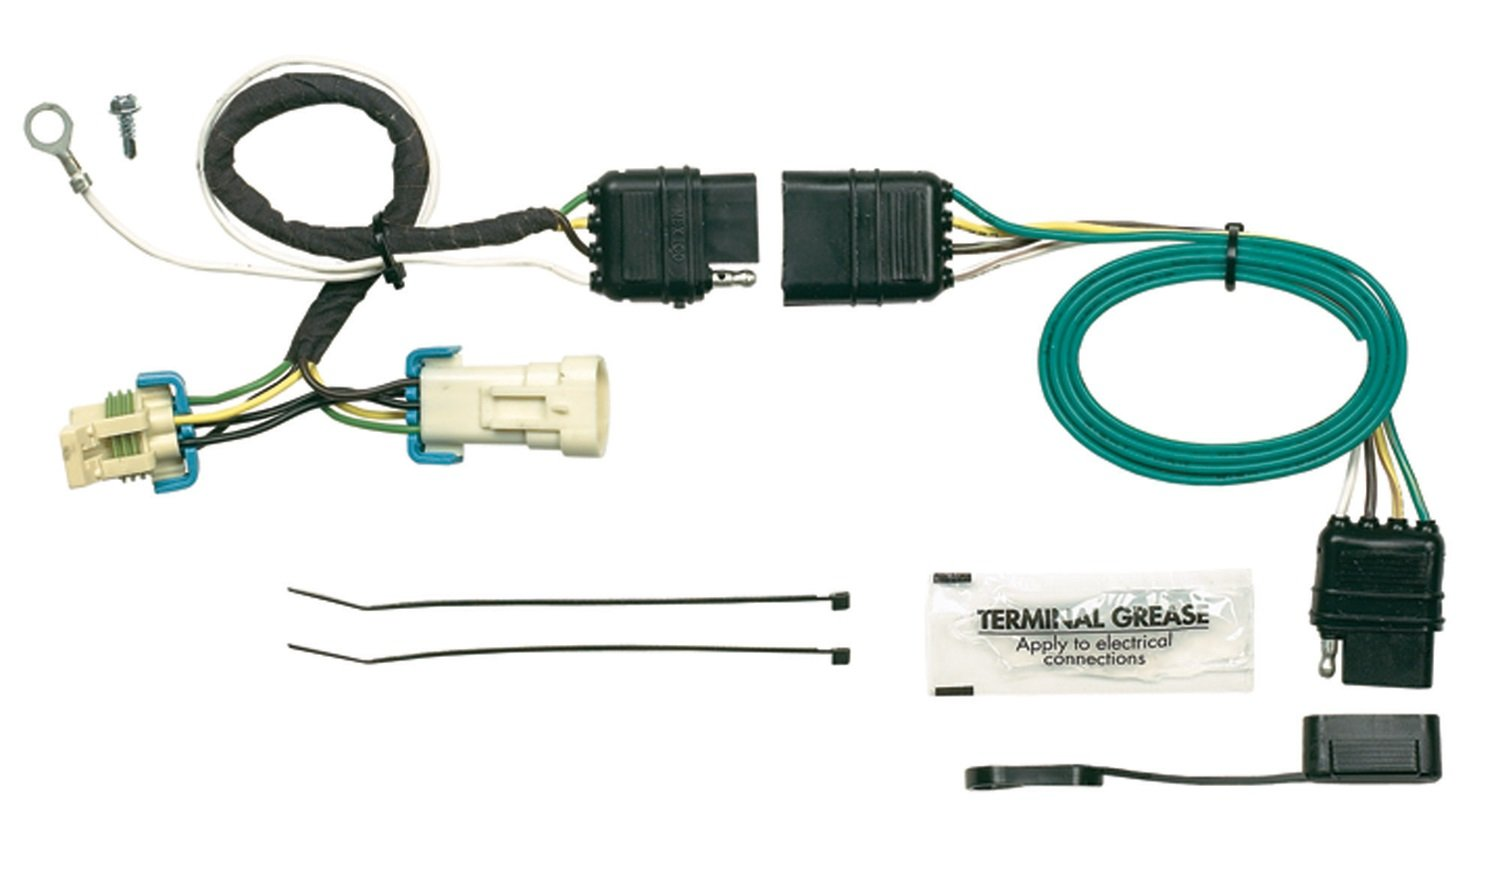 618X6OJbTkL._SL1500_ amazon com hopkins 41135 plug in simple vehicle wiring kit 1990 Toyota Pickup Wiring Harness at gsmx.co